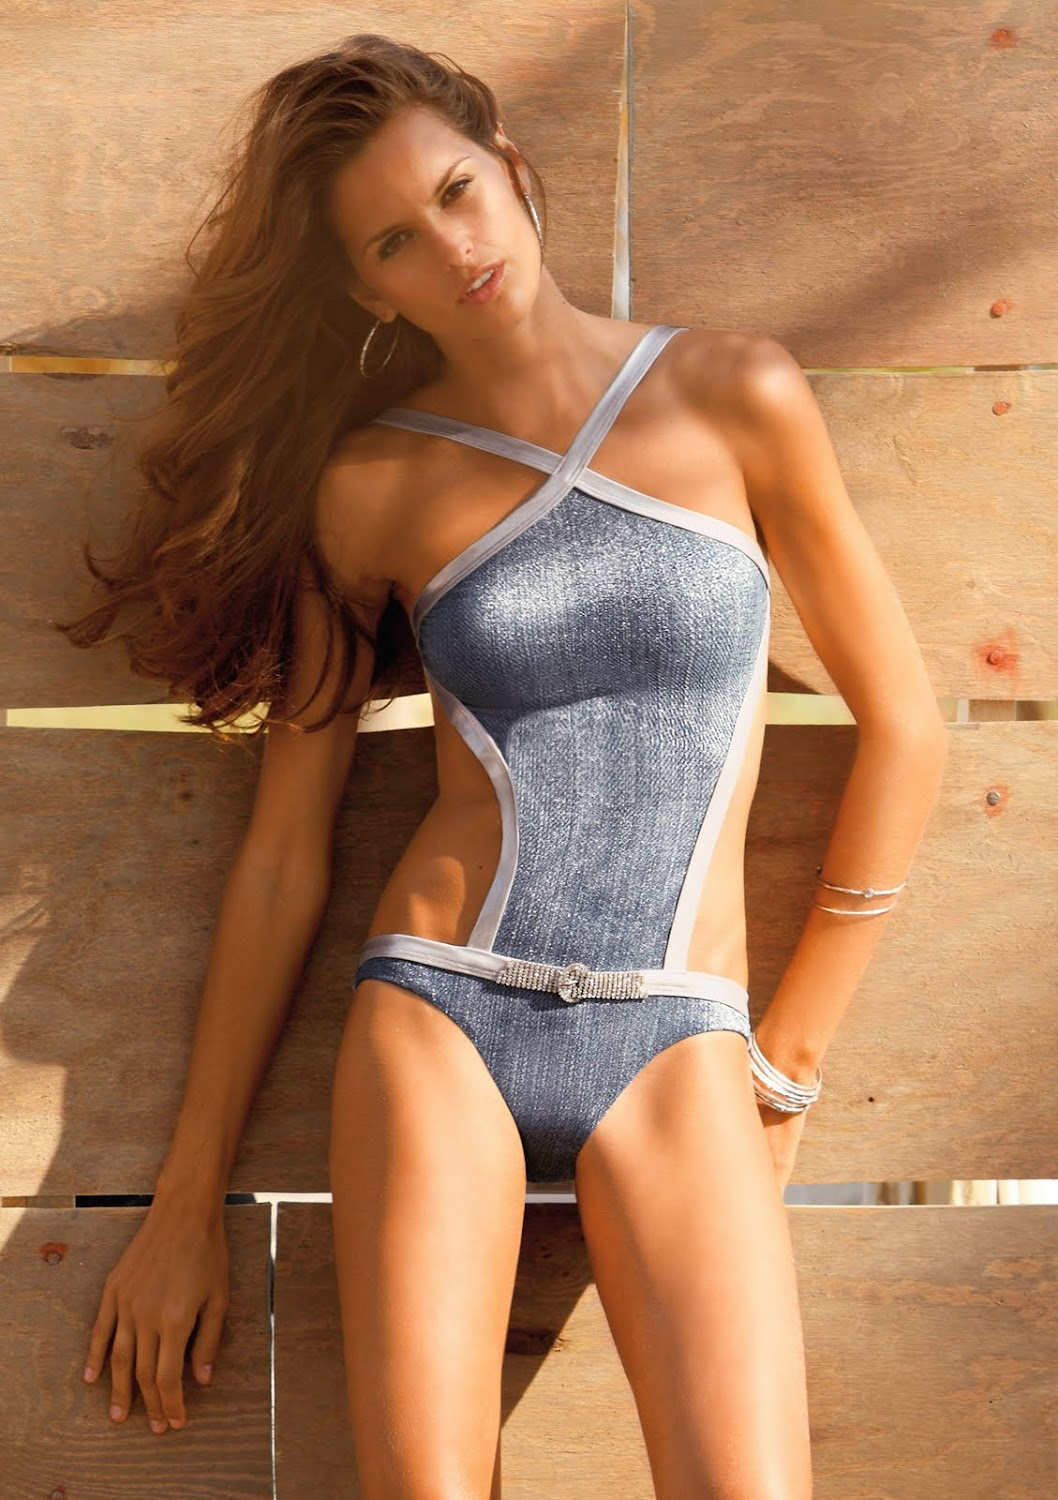 Calzedonia Summer 'Delicate in Denim' collection